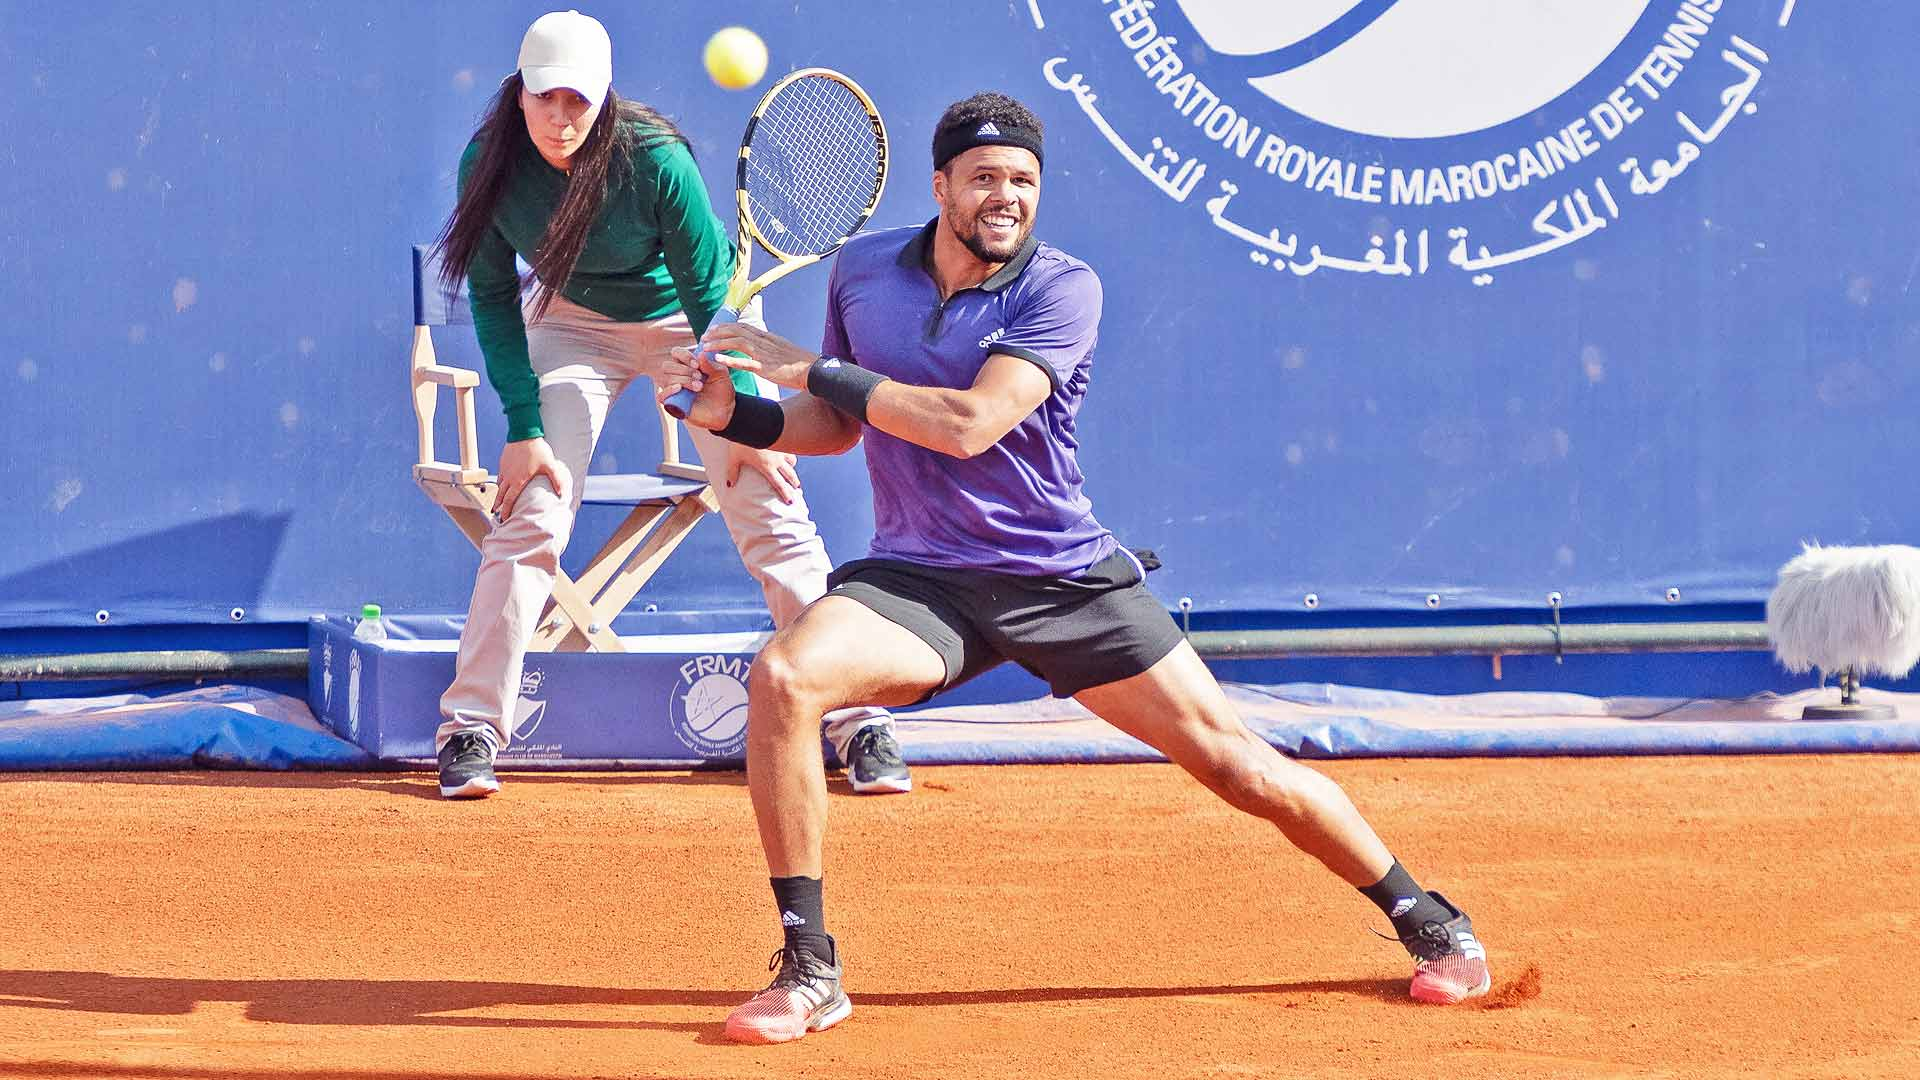 Jo-Wilfried Tsonga hits a backhand during his opener in Marrakech